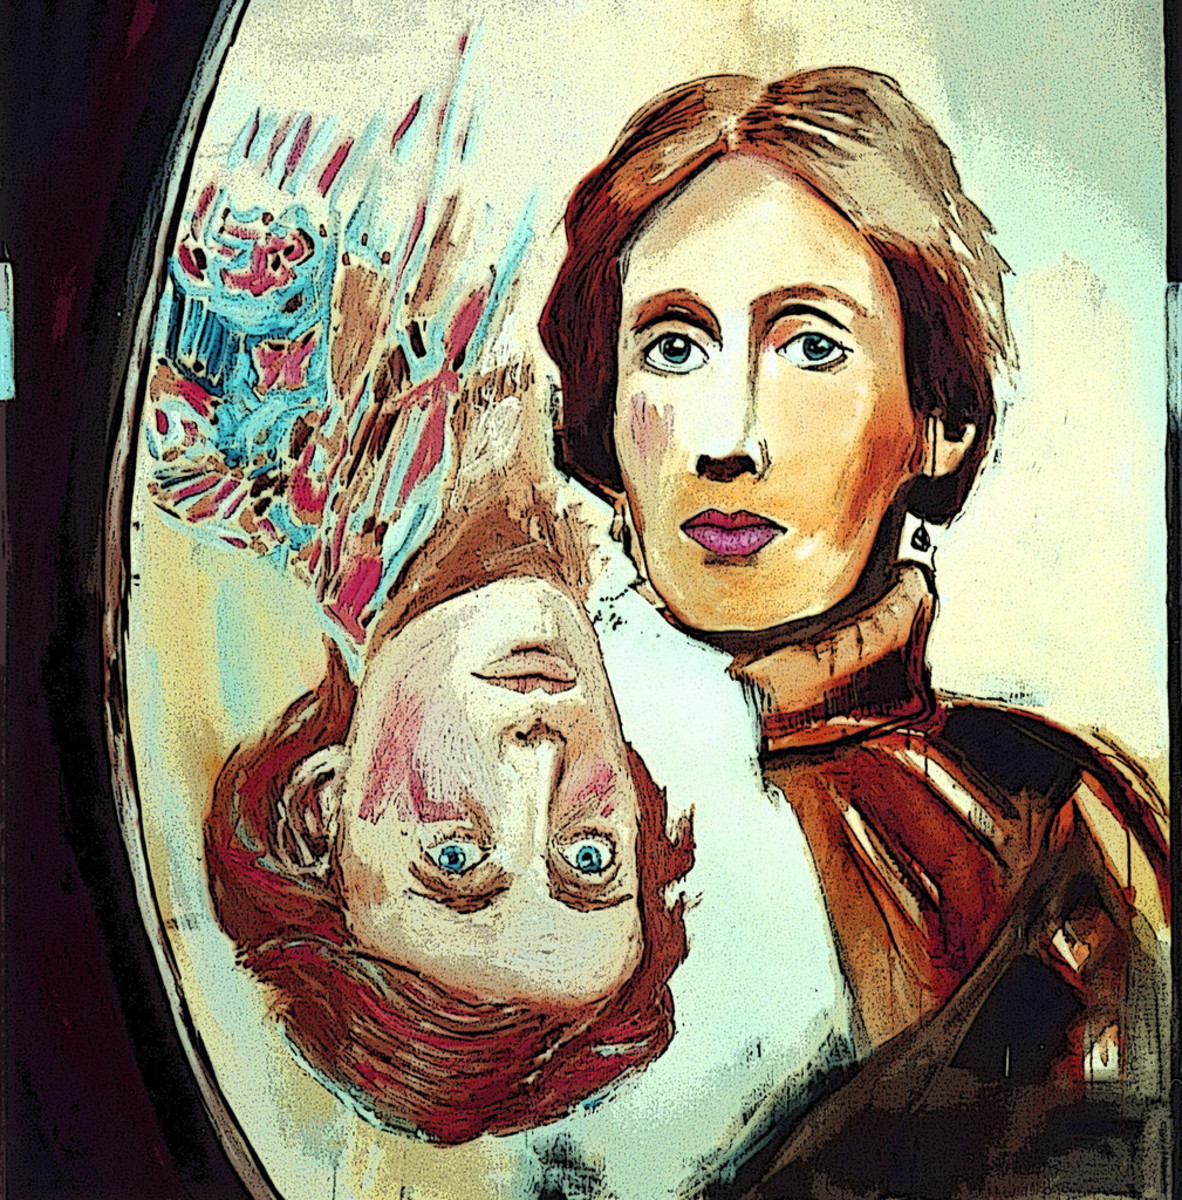 A Biographical Analysis of Virginia Woolf: The Impact of Mental Illness in Woolf's Life, Marriage, and Literature